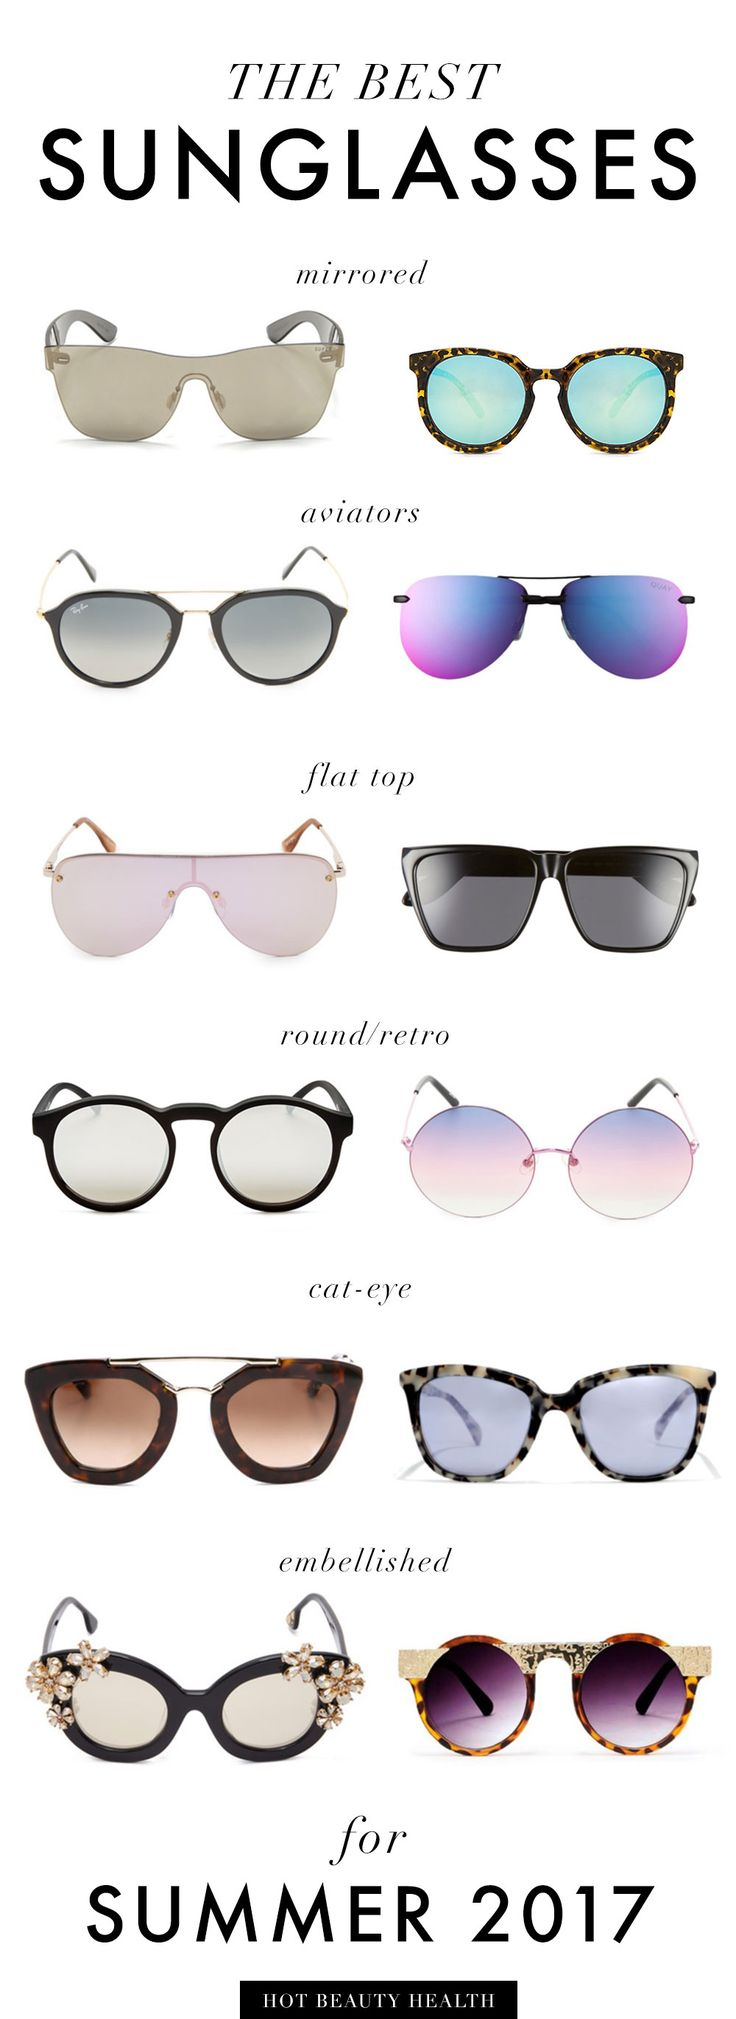 The Ultimate Women's Summer Sunglasses Guide for 2017! Find cute sunglasses to wear at the beach or to accessorize your outfits. So many different frames to choose (aviators, round/retro, cat eye, etc.) from brands like Ray Ban and Quay Australia.